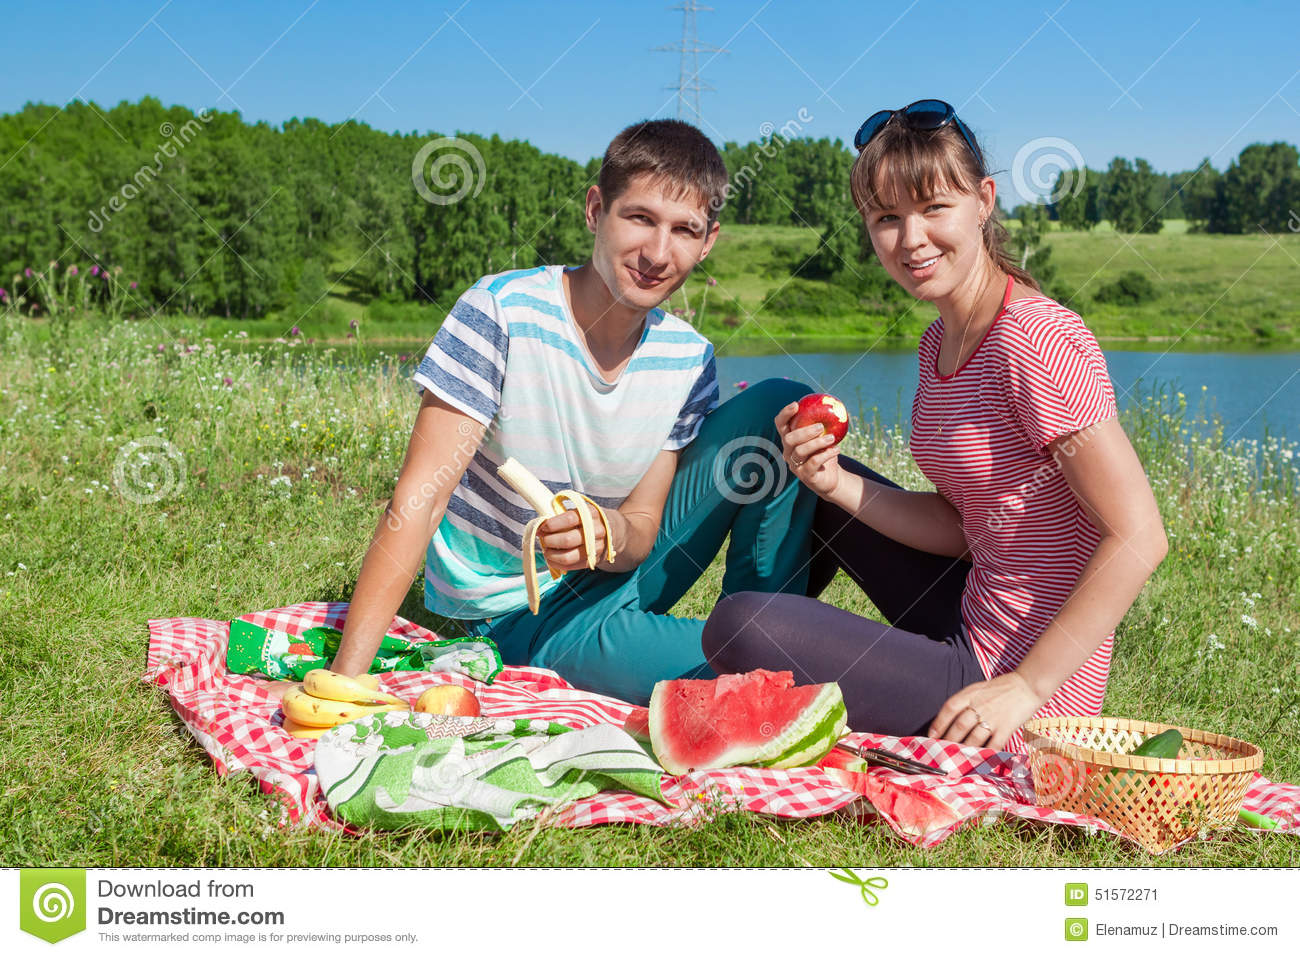 Outdoor Portrait Of Happy Loving Couple Having A Picnic At